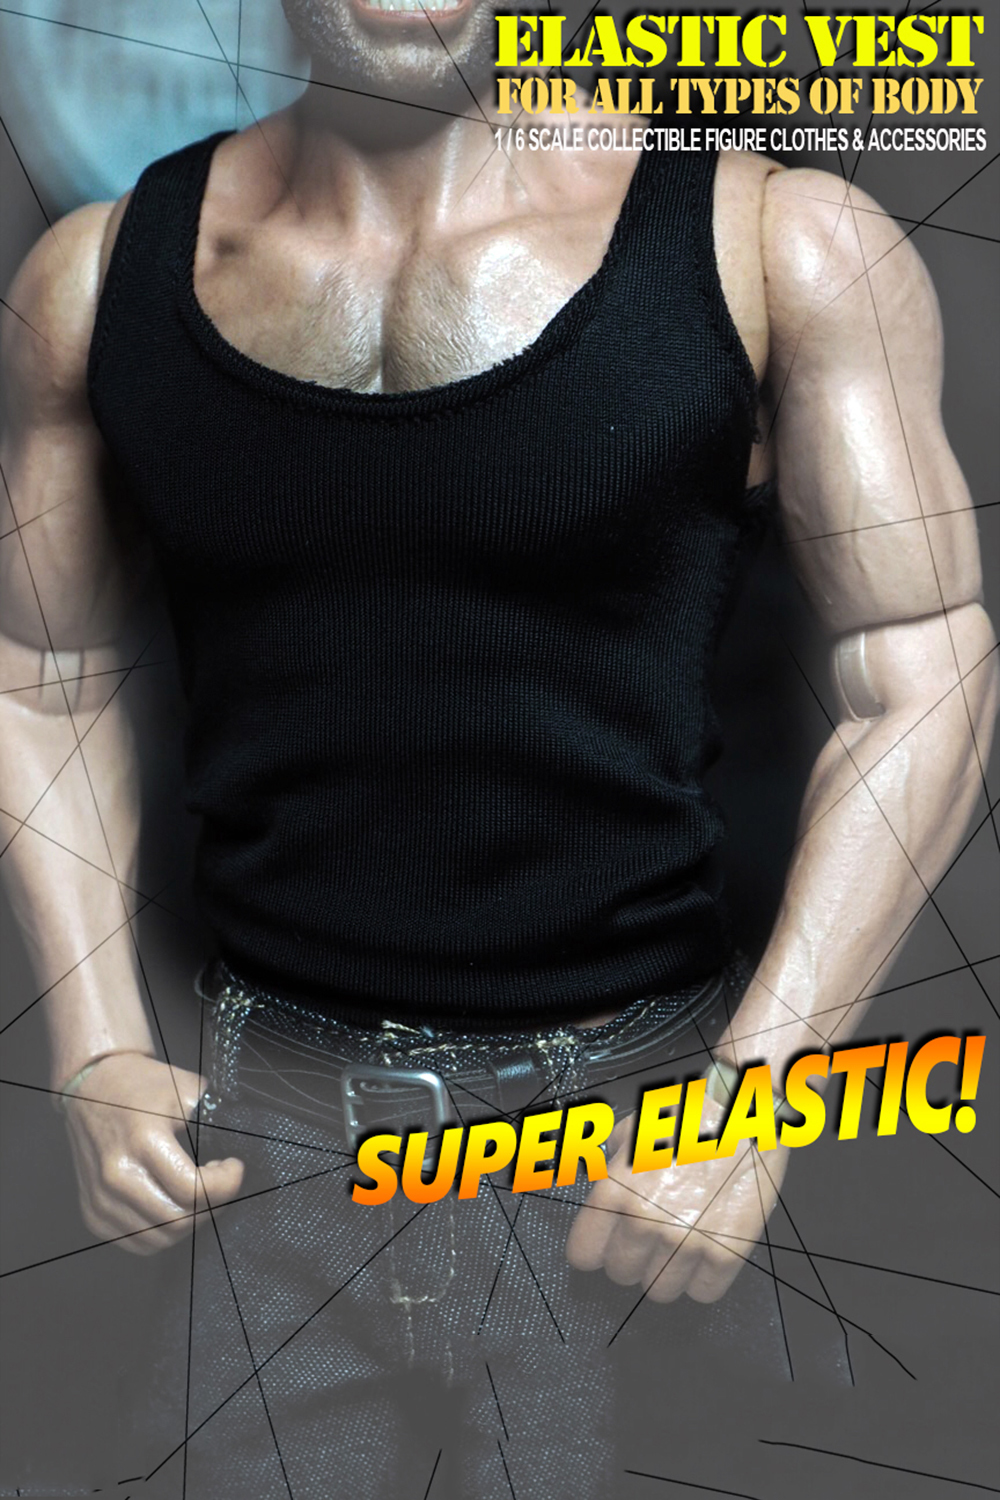 <font><b>1/6</b></font> <font><b>scale</b></font> <font><b>Male</b></font> <font><b>Clothes</b></font> Low Collar Slim Vest Sleeveless T-shirt Clothing for 12'' Wolverine Action Figure Body Accessory image